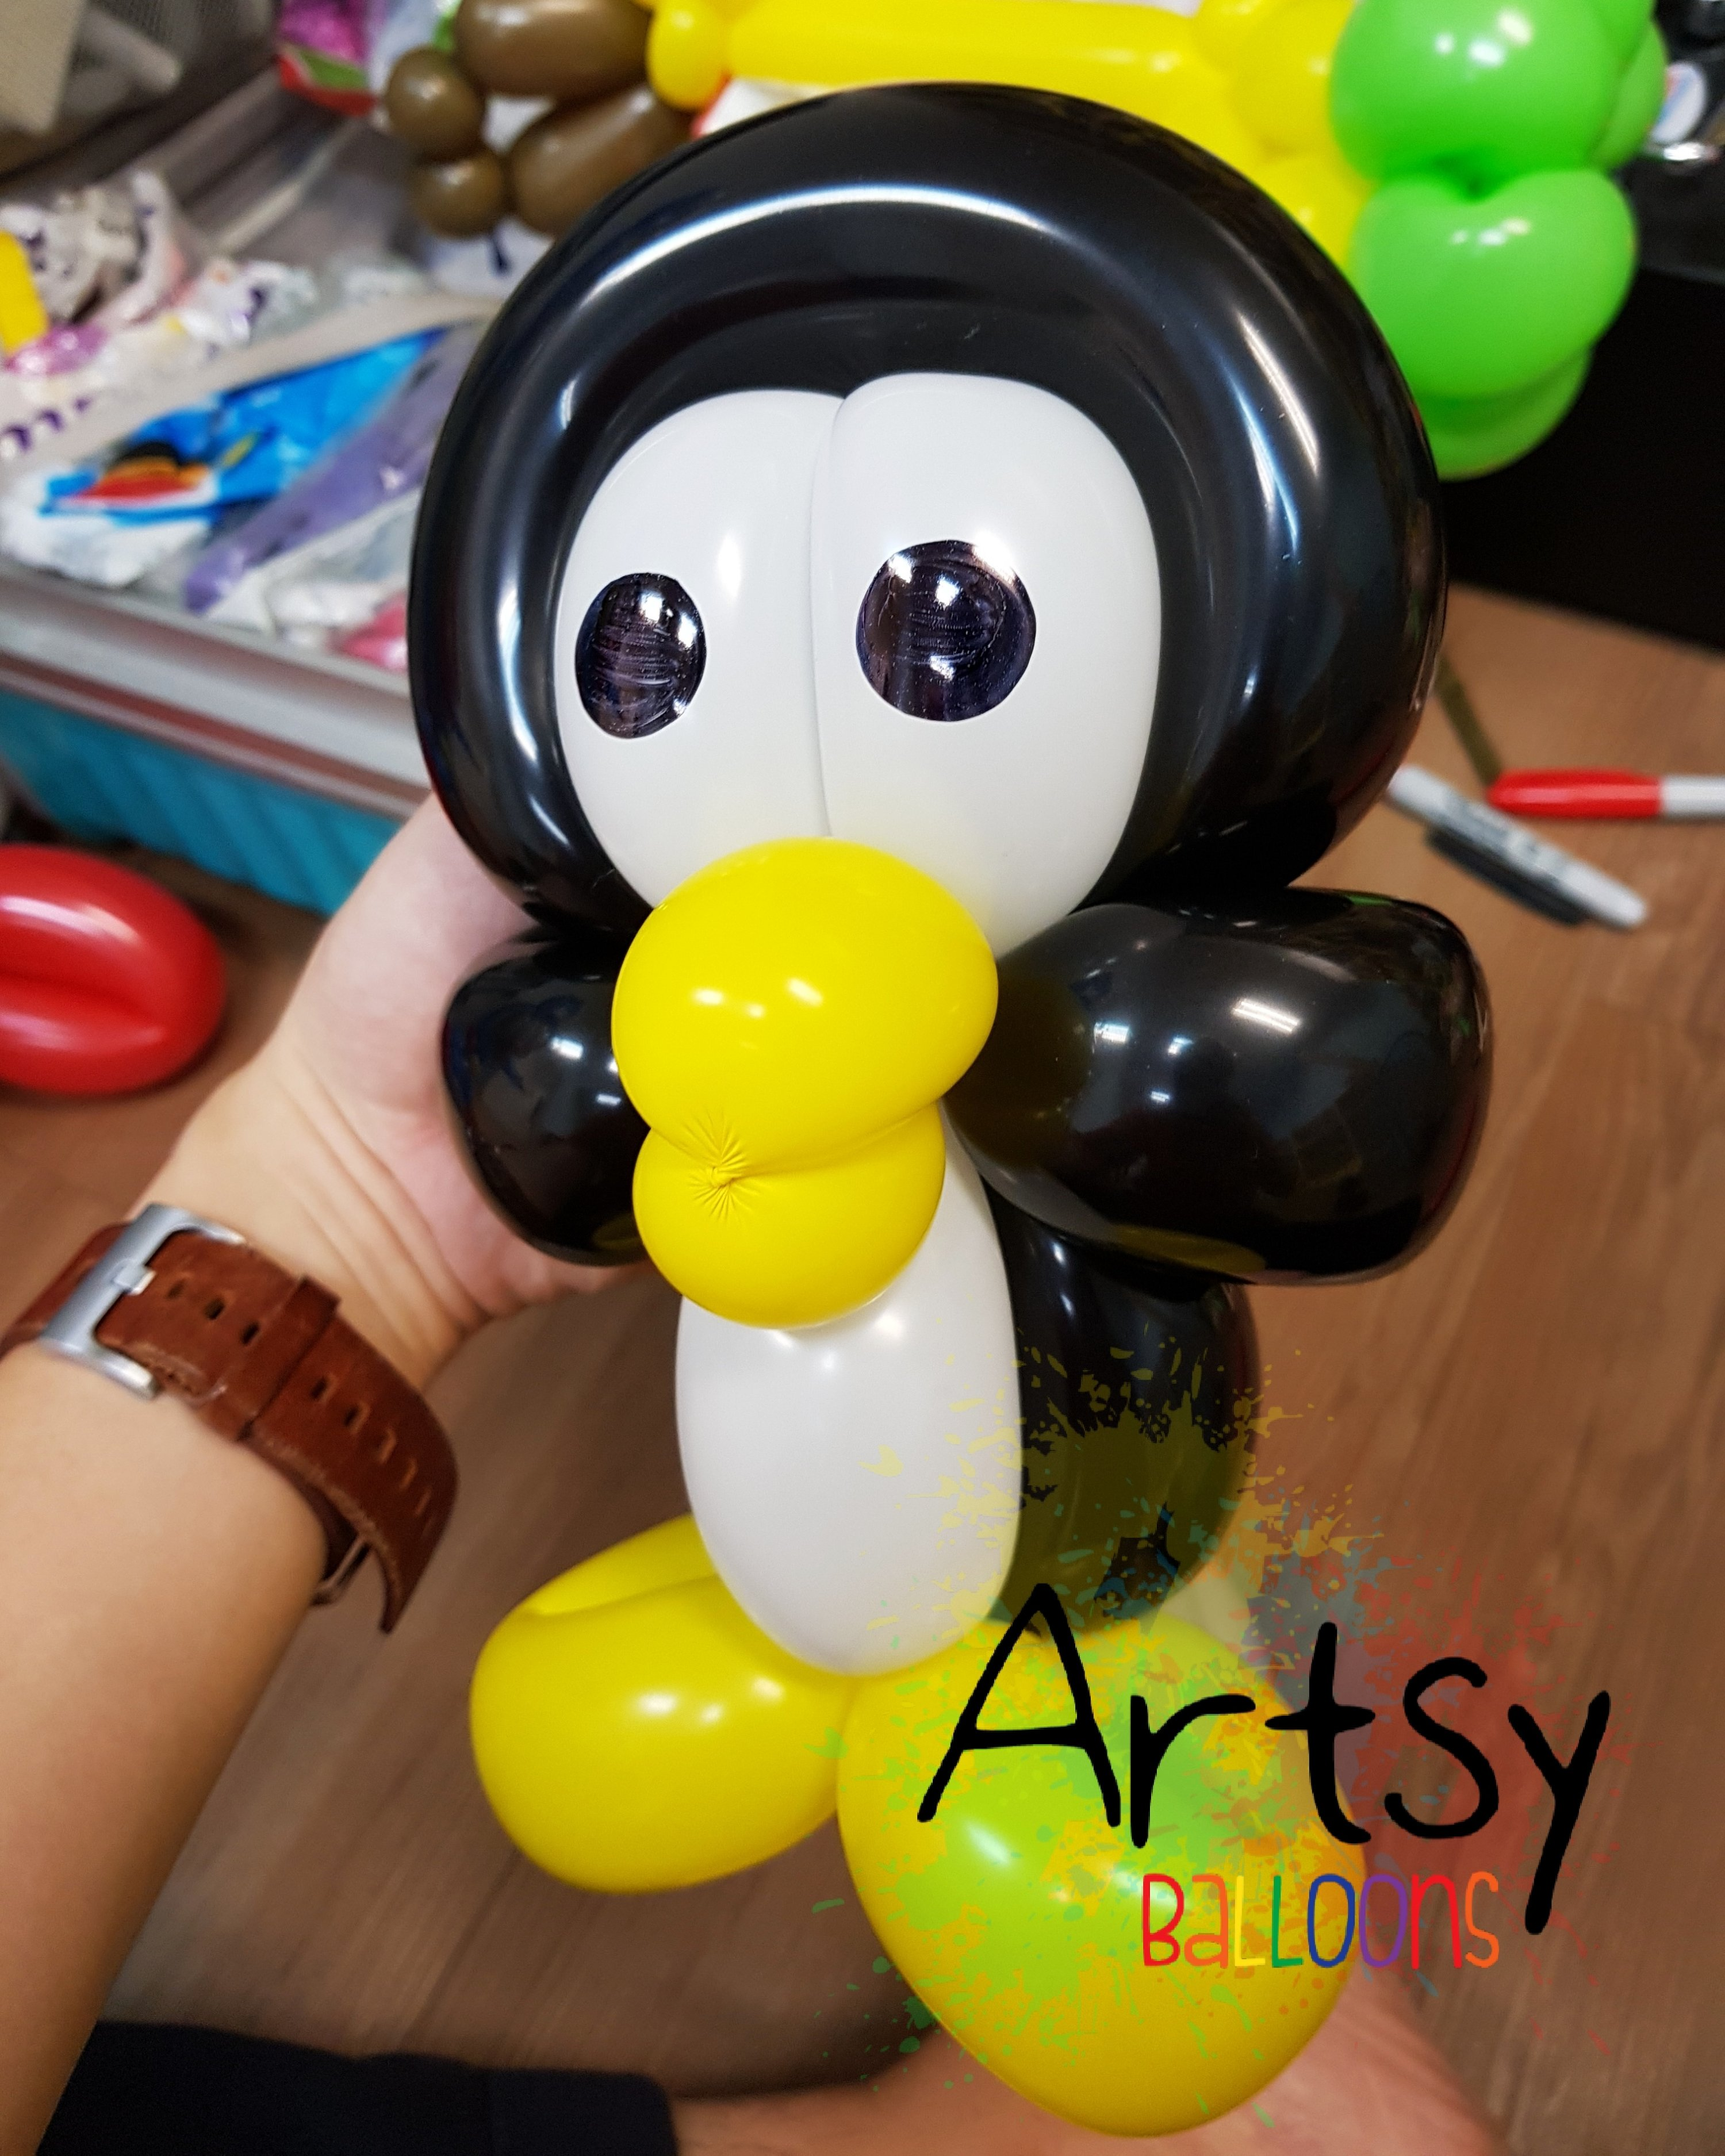 , Just did a birthday party for my long time client!, Singapore Balloon Decoration Services - Balloon Workshop and Balloon Sculpting